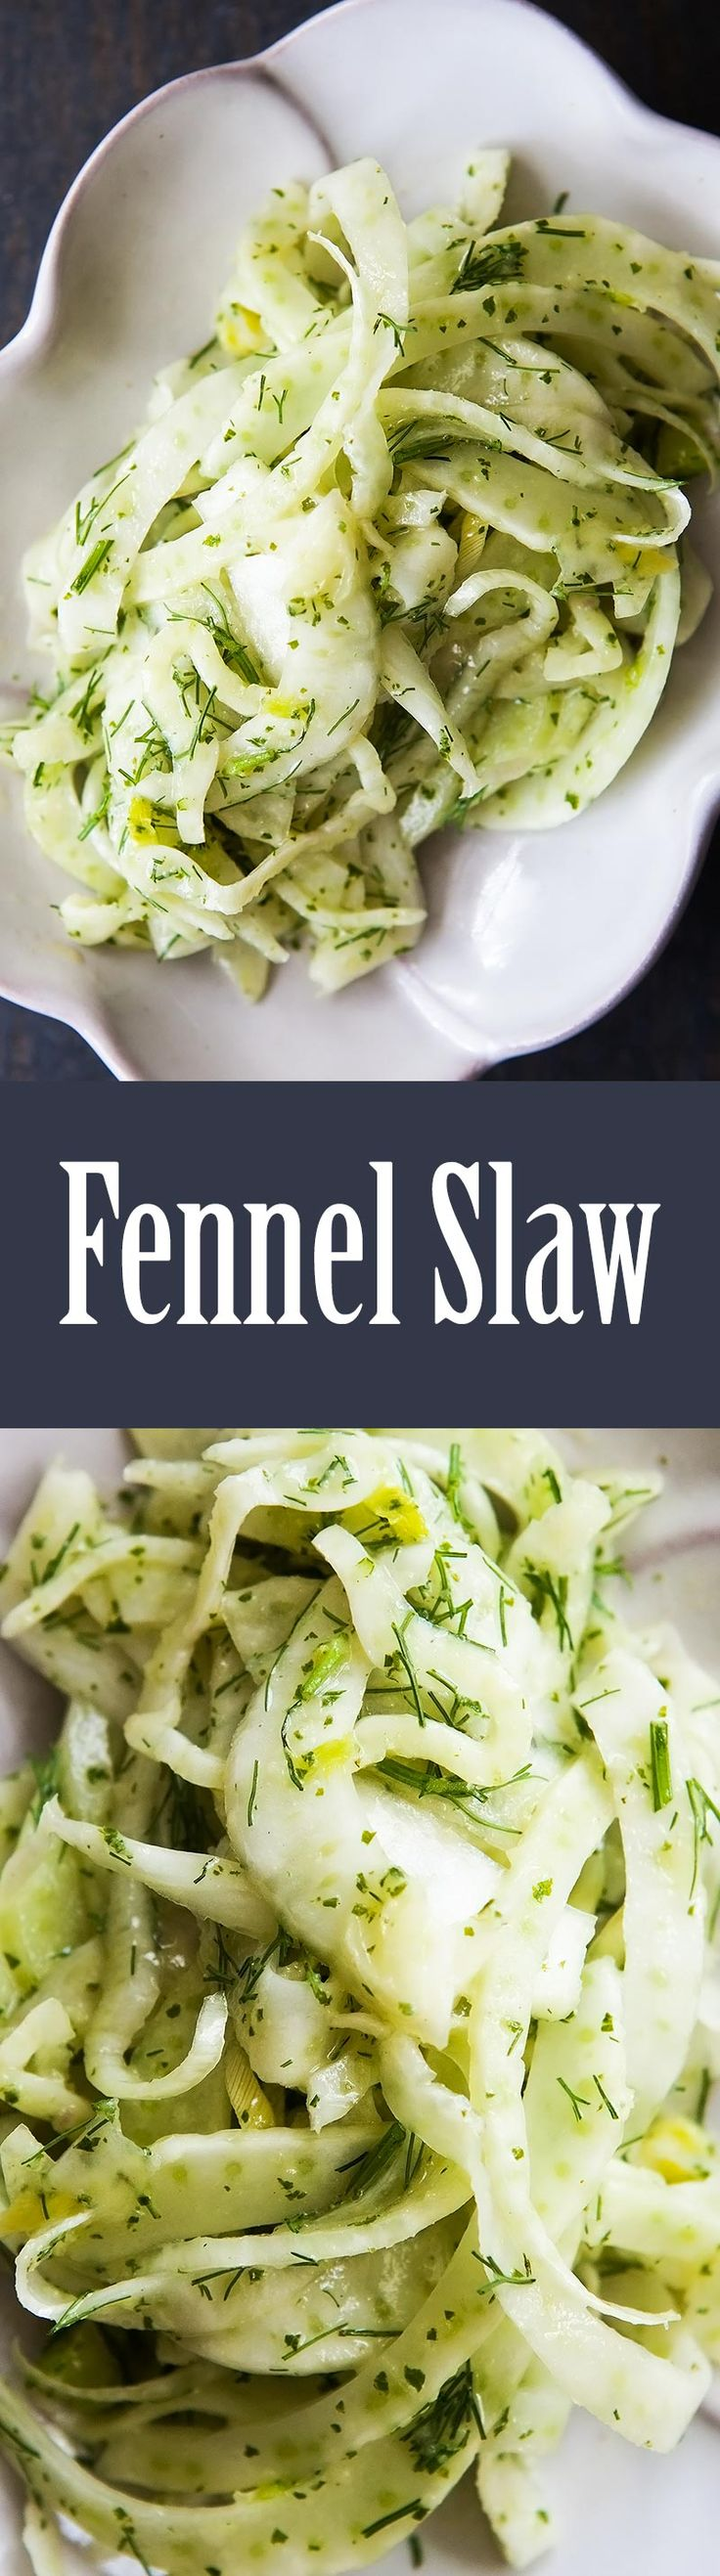 Fennel Slaw with Mint Vinaigrette | Recipe | Fennel Salad, Fennel and ...